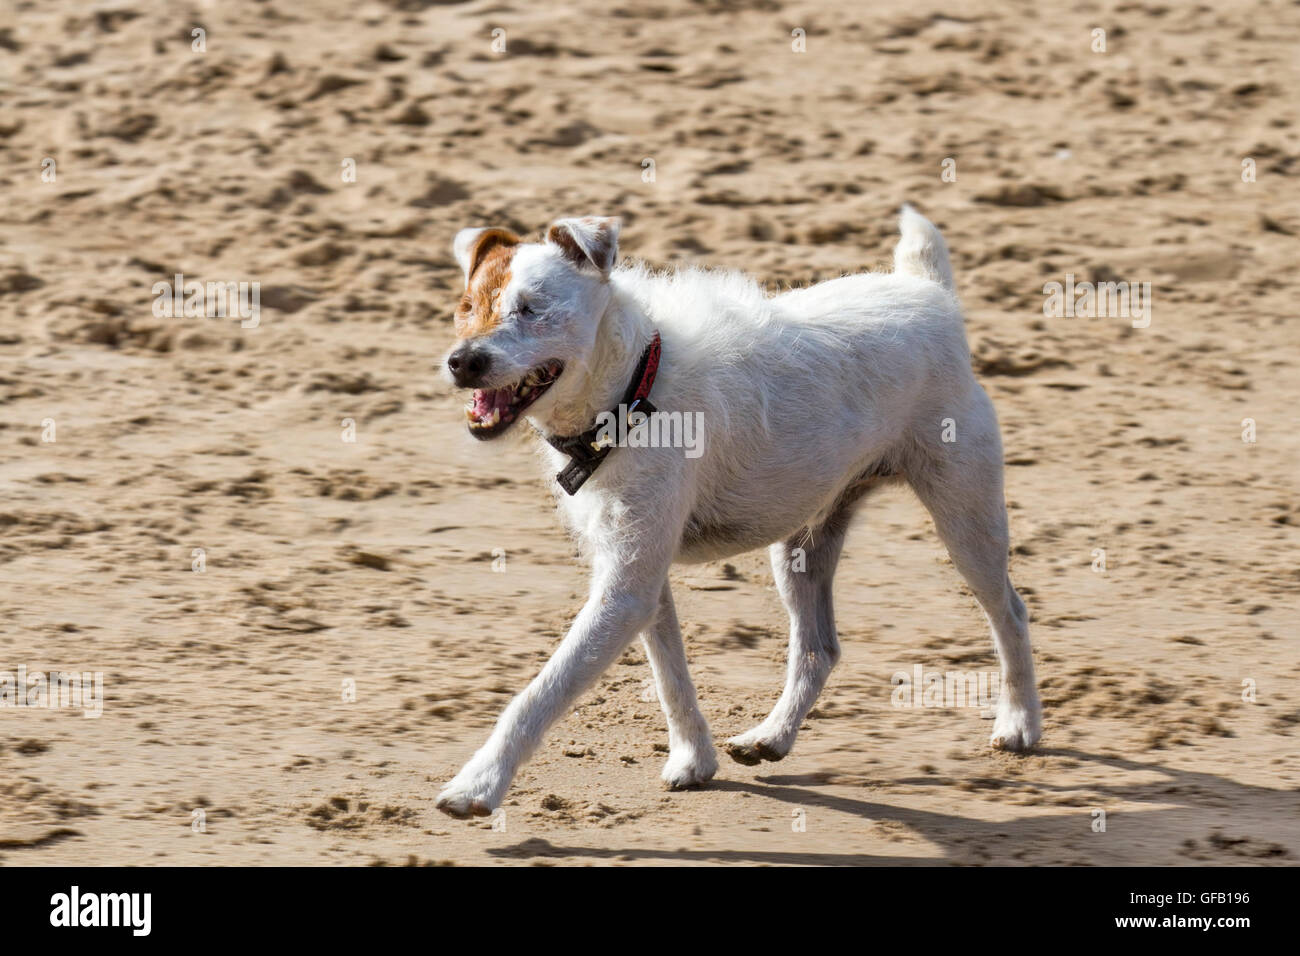 Southport, Merseyside, UK.   31st July, 2016. A Parson Russell Terrier, a dog with no eyes, exercises on Ainsdale - Stock Image